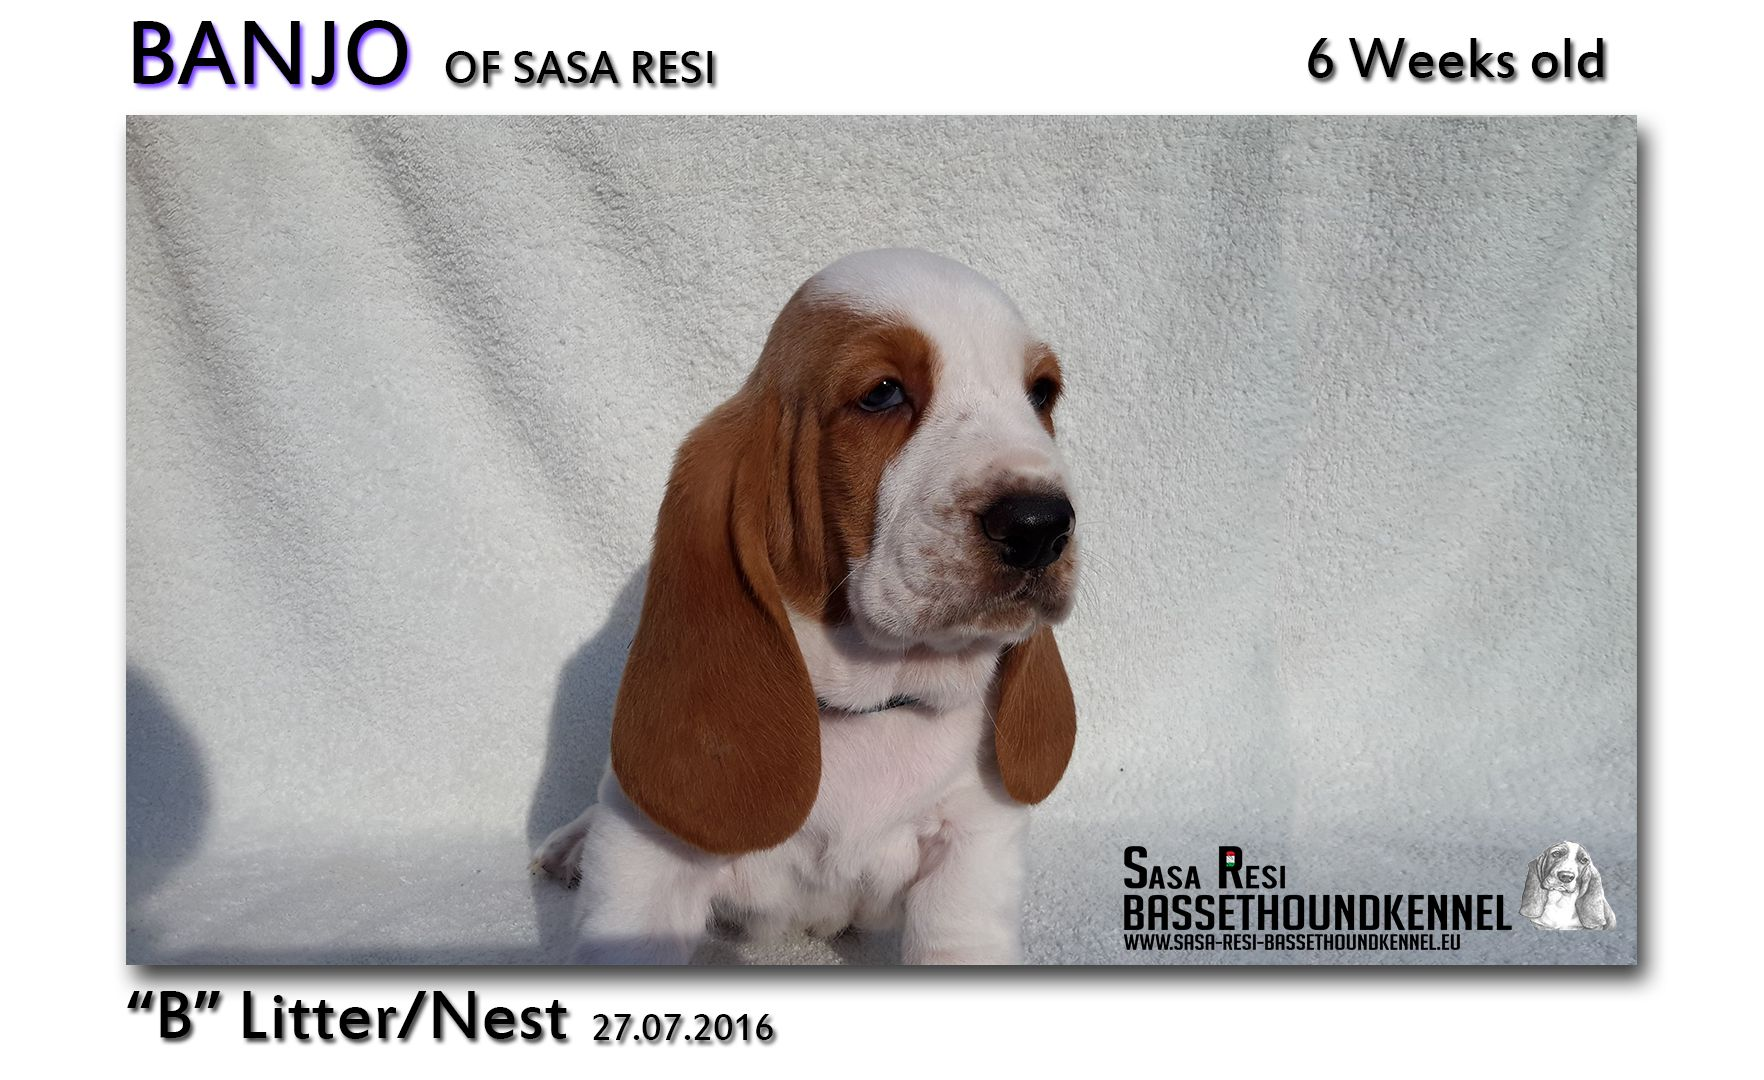 1 compressed 9 SaSa ReSi Bassethoundkennel